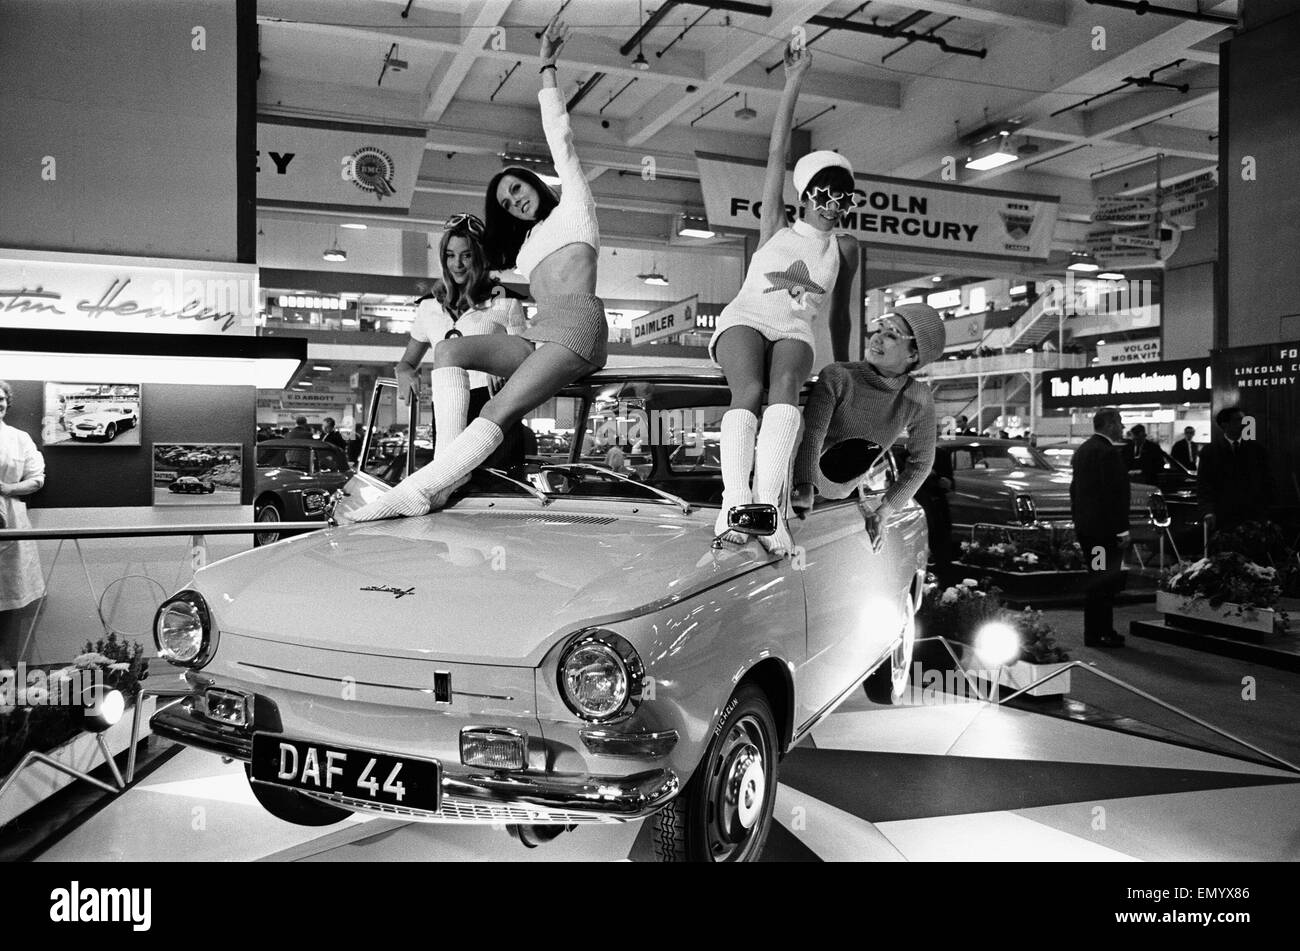 Models drapped over a DAF 44 car at the London Motor Show 18th October 1966. - Stock Image